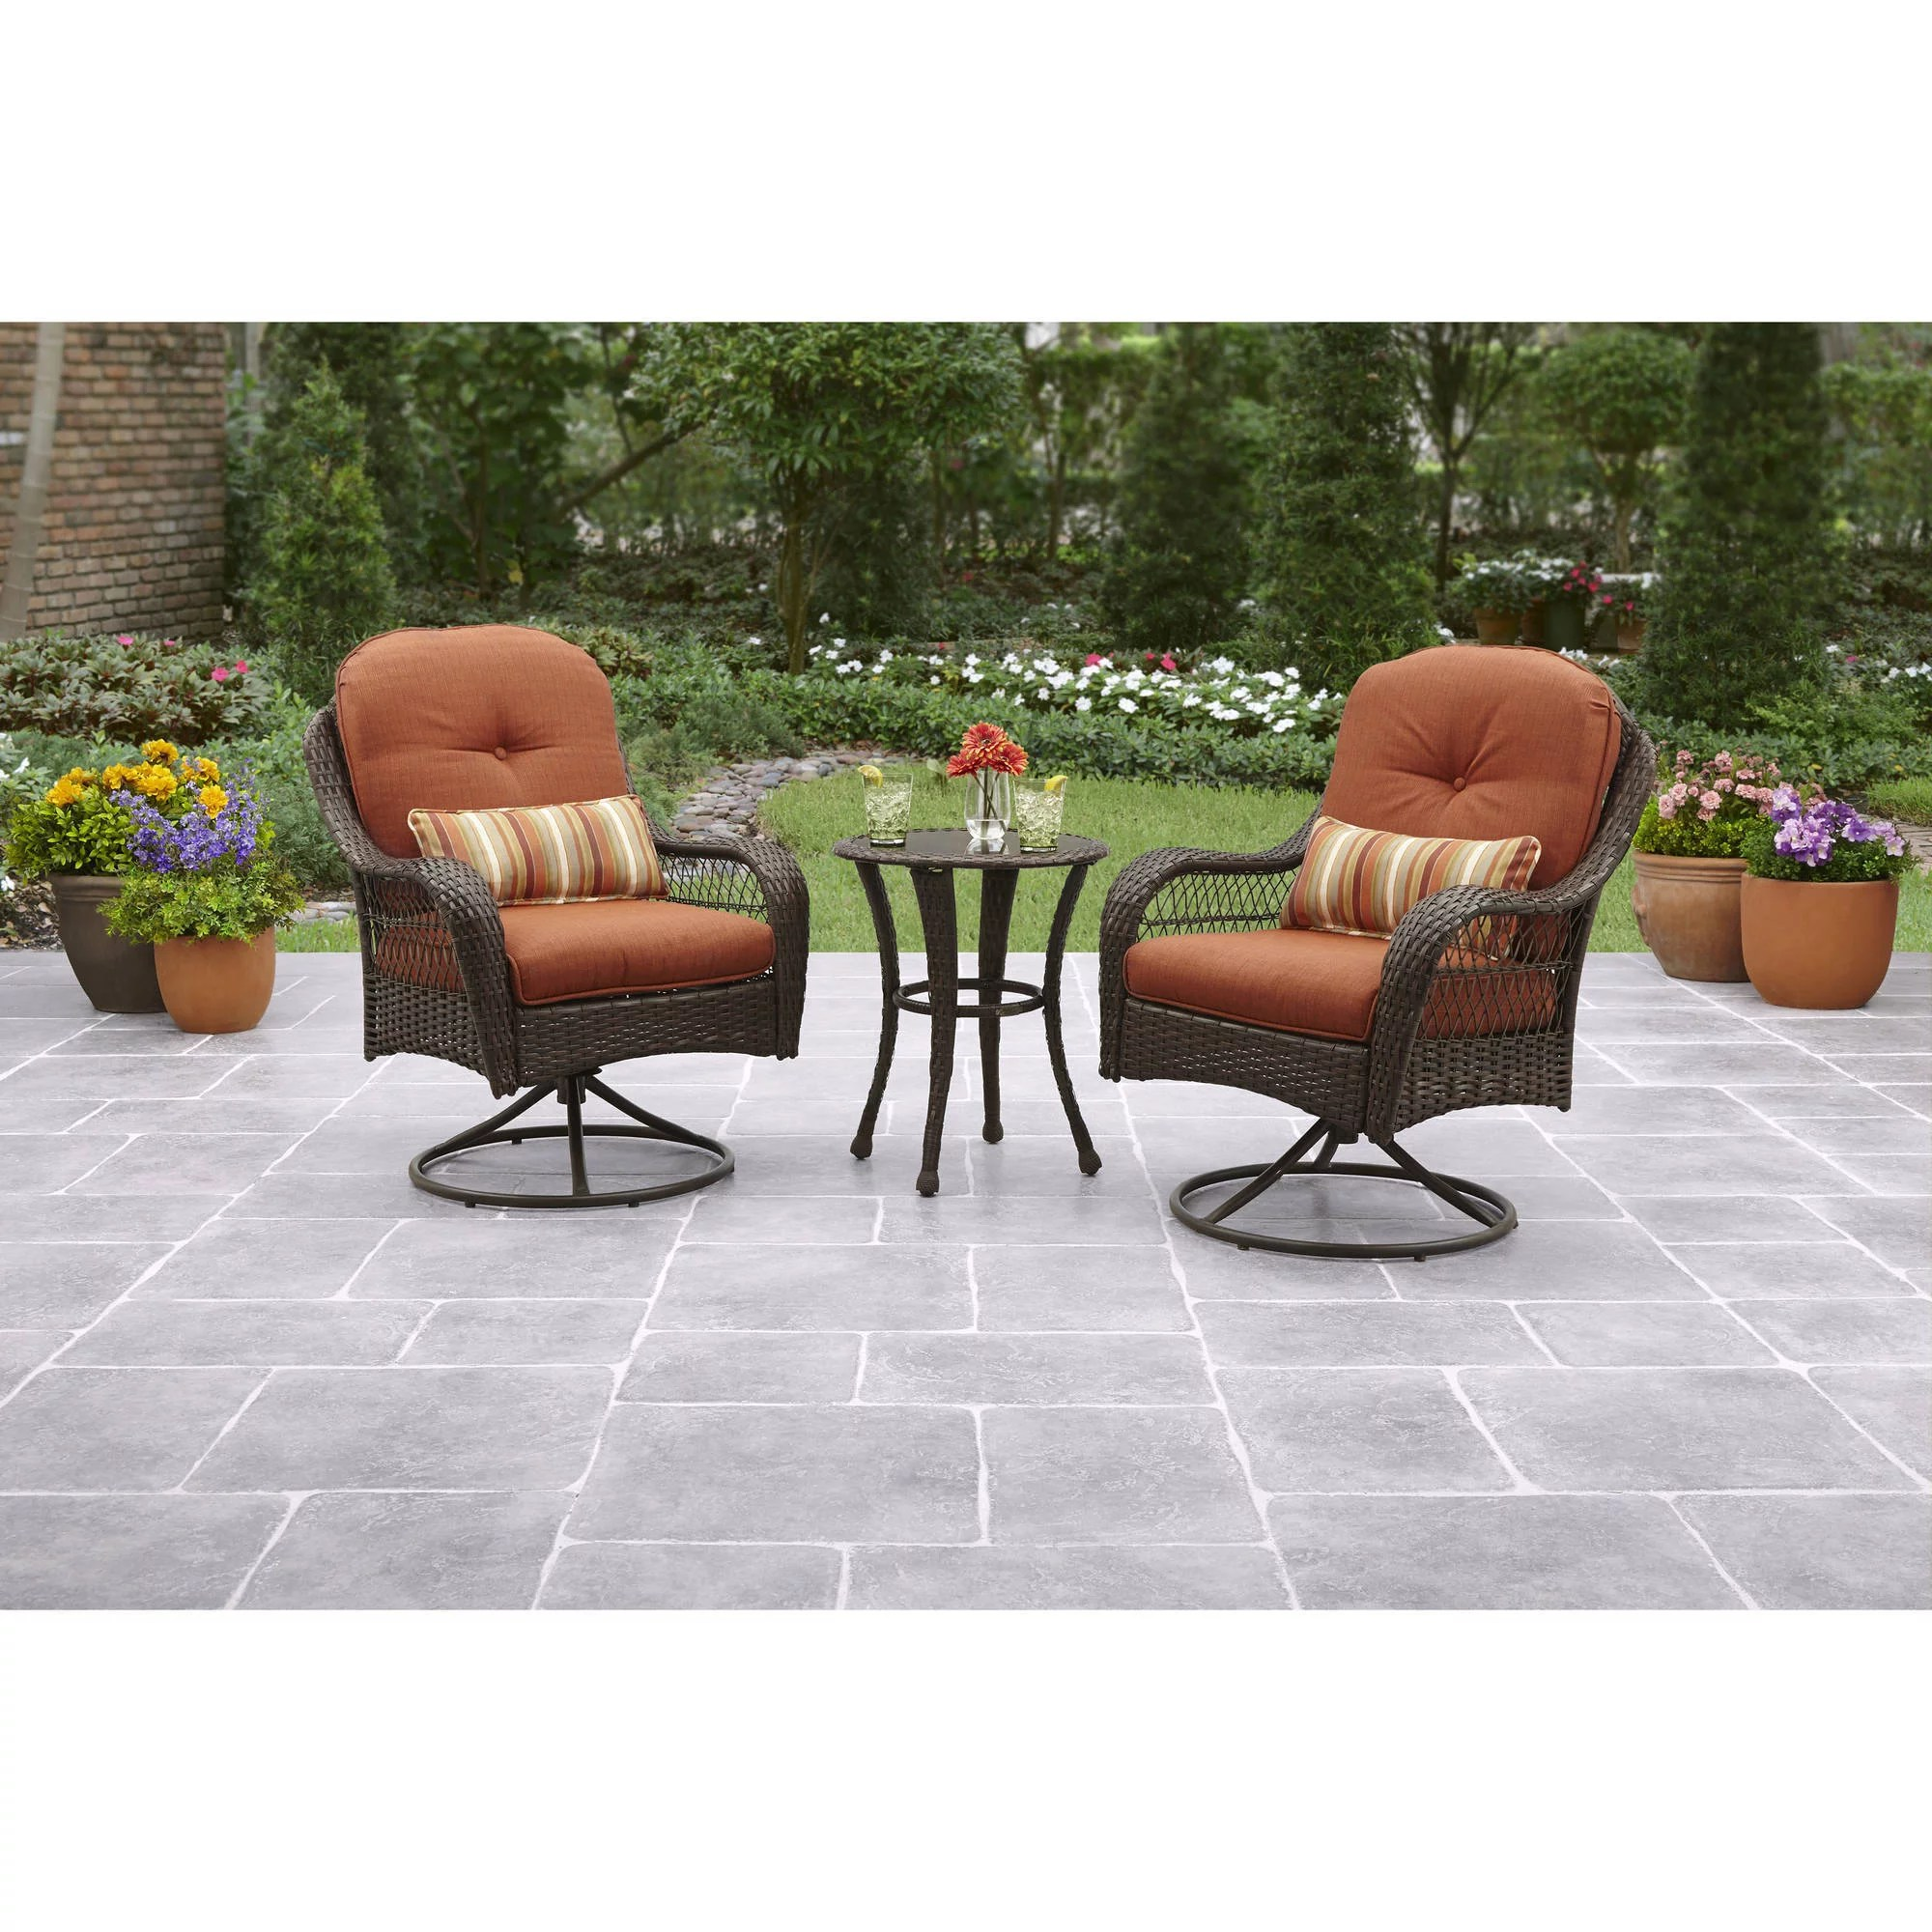 Metal Bistro Table And Chairs Better Homes And Gardens Azalea Ridge 3 Piece Outdoor Bistro Set